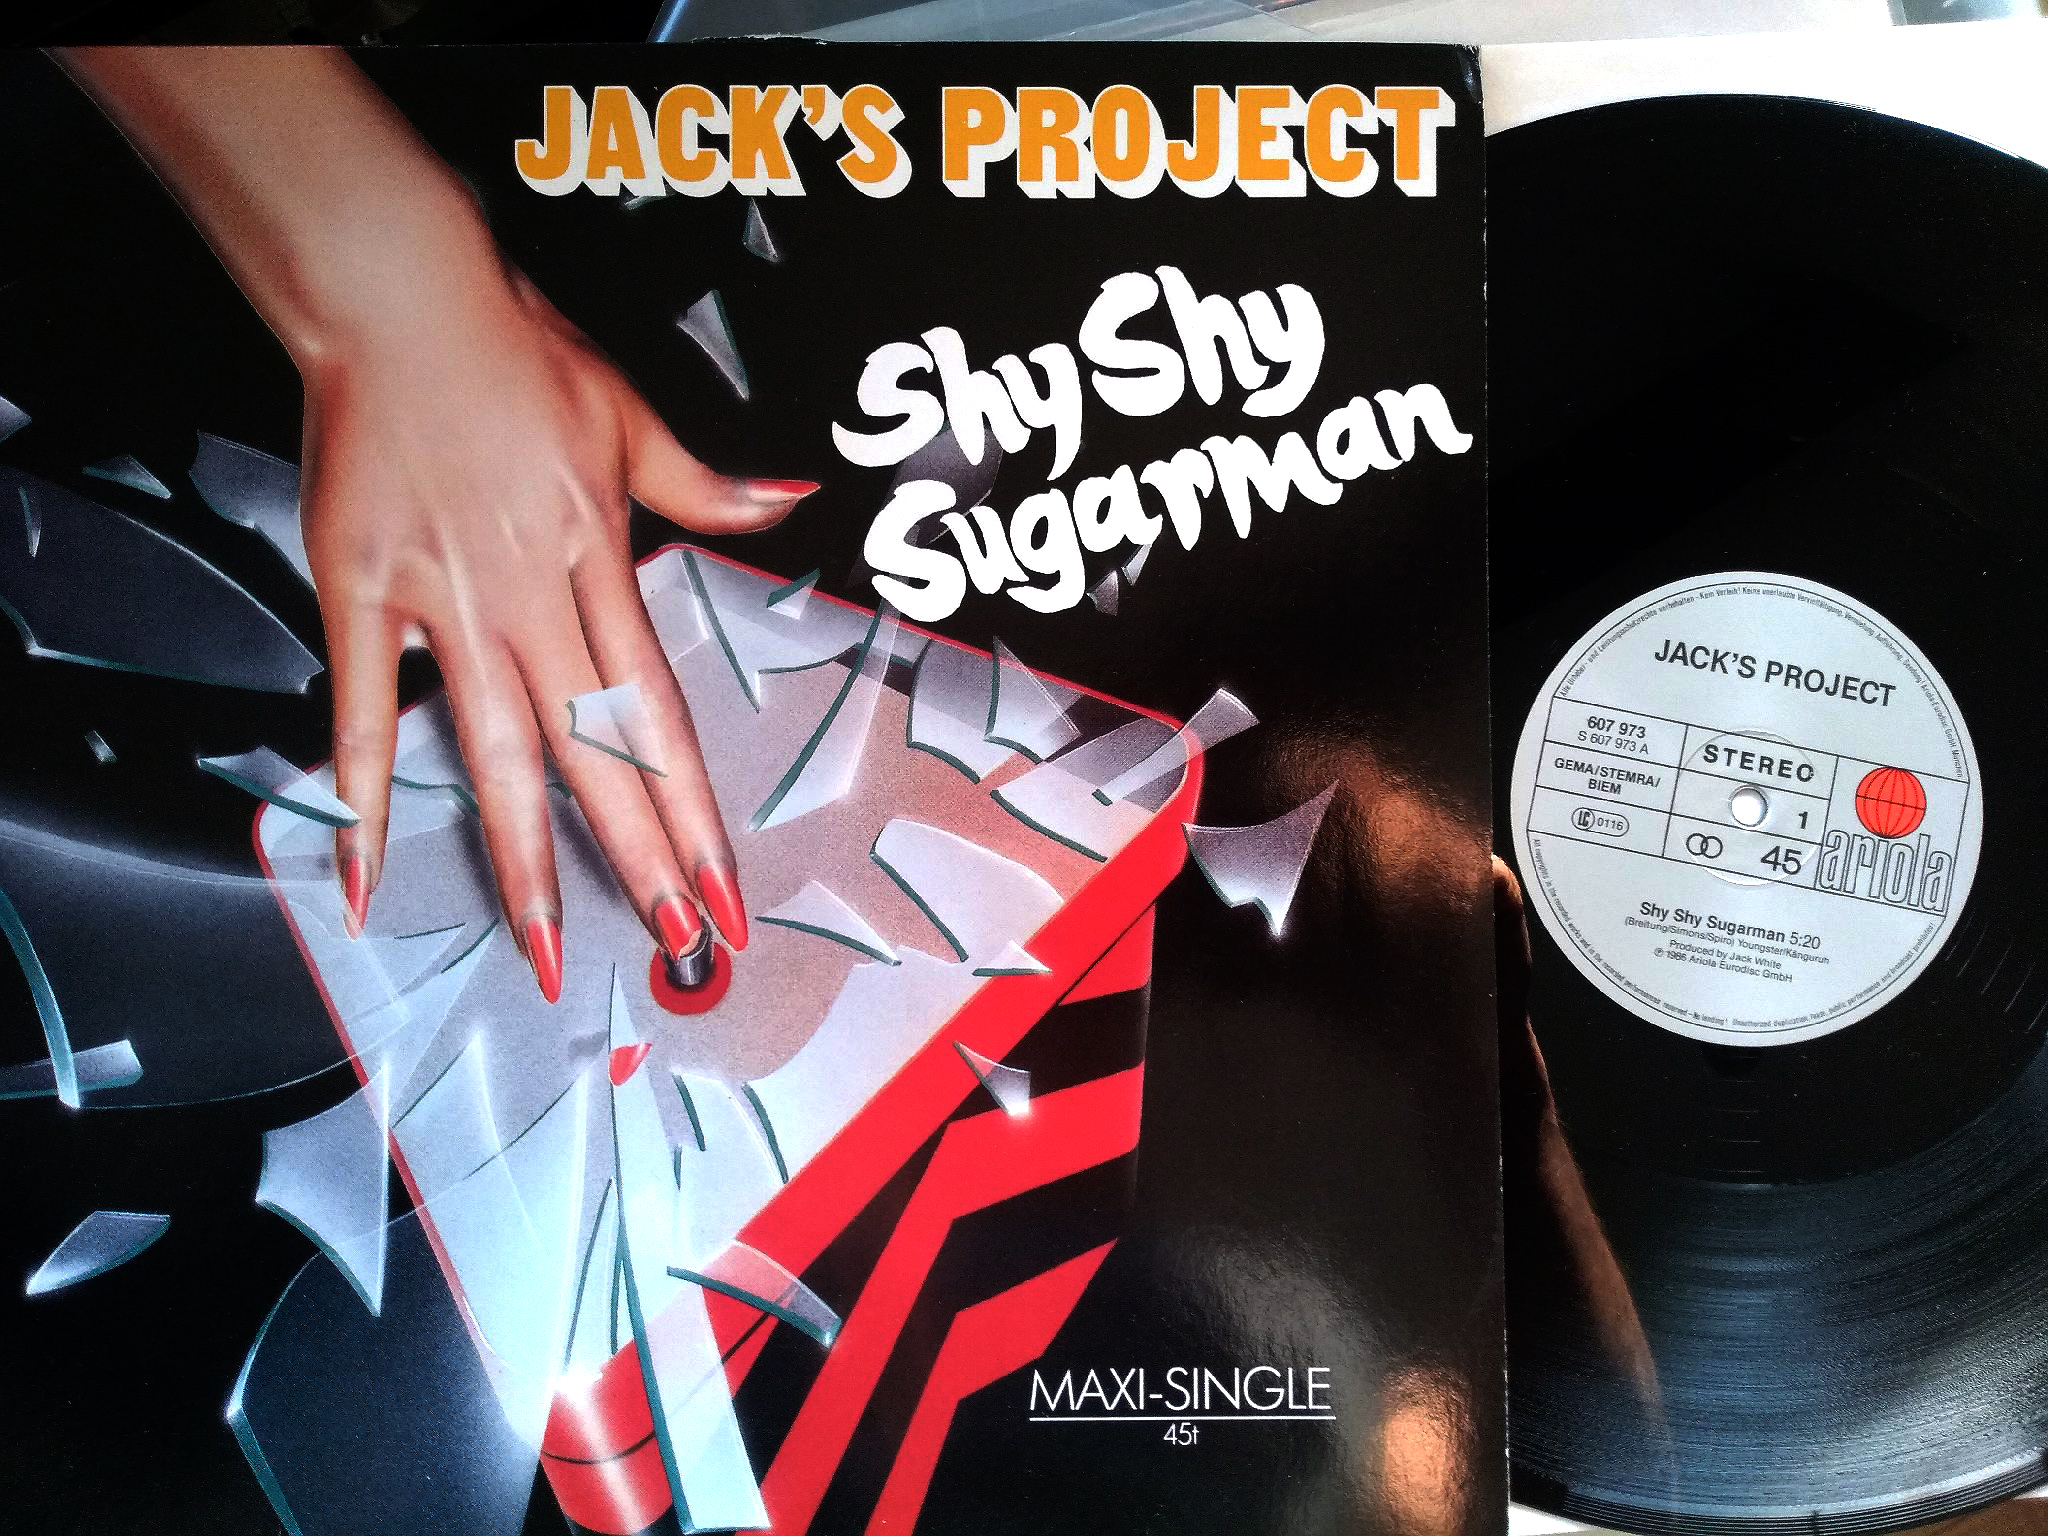 Jack's Project ‎- Shy Shy Sugarman